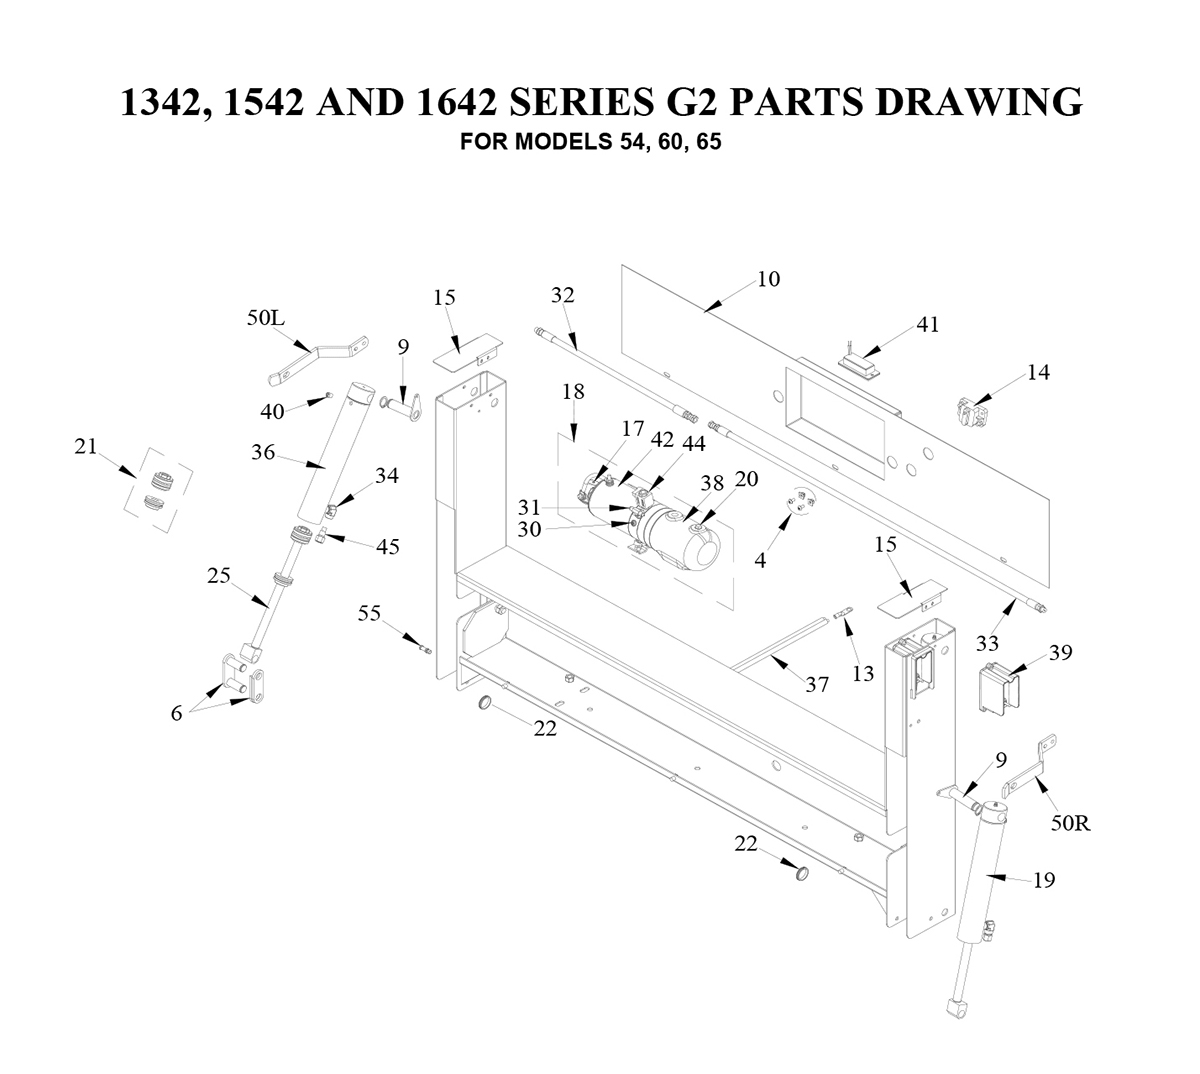 gb pickup wiring diagram electron dot for s liftgate diagrams tommy gate parts shop ite g2 42 1 of 2 service body